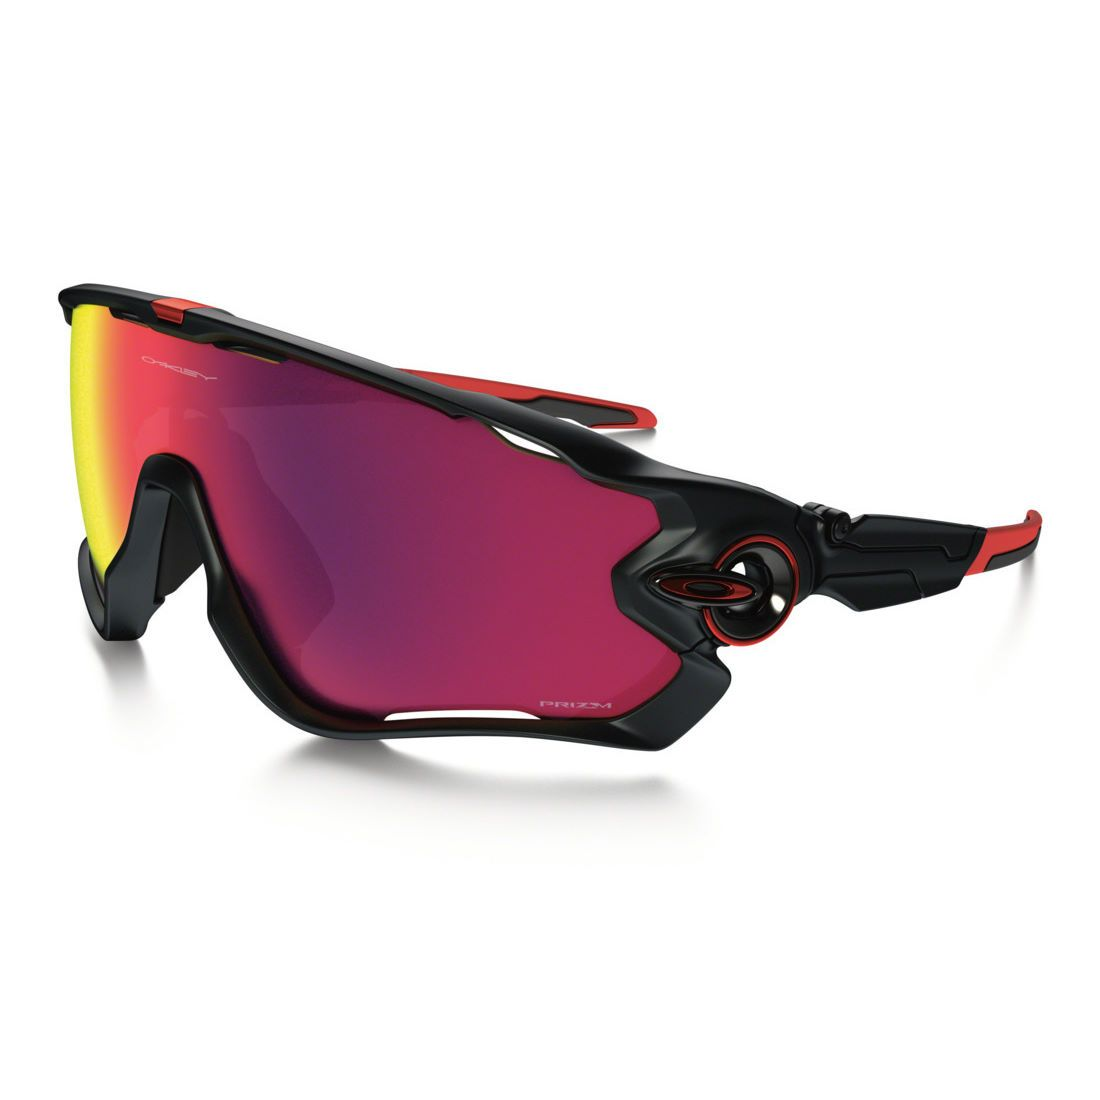 8aa1d01d101 Oakley Jawbreaker Prizm Road Sunglasses Polished Black Cavendish Edition  with Prizm Road Lenses at Cycling Bargains